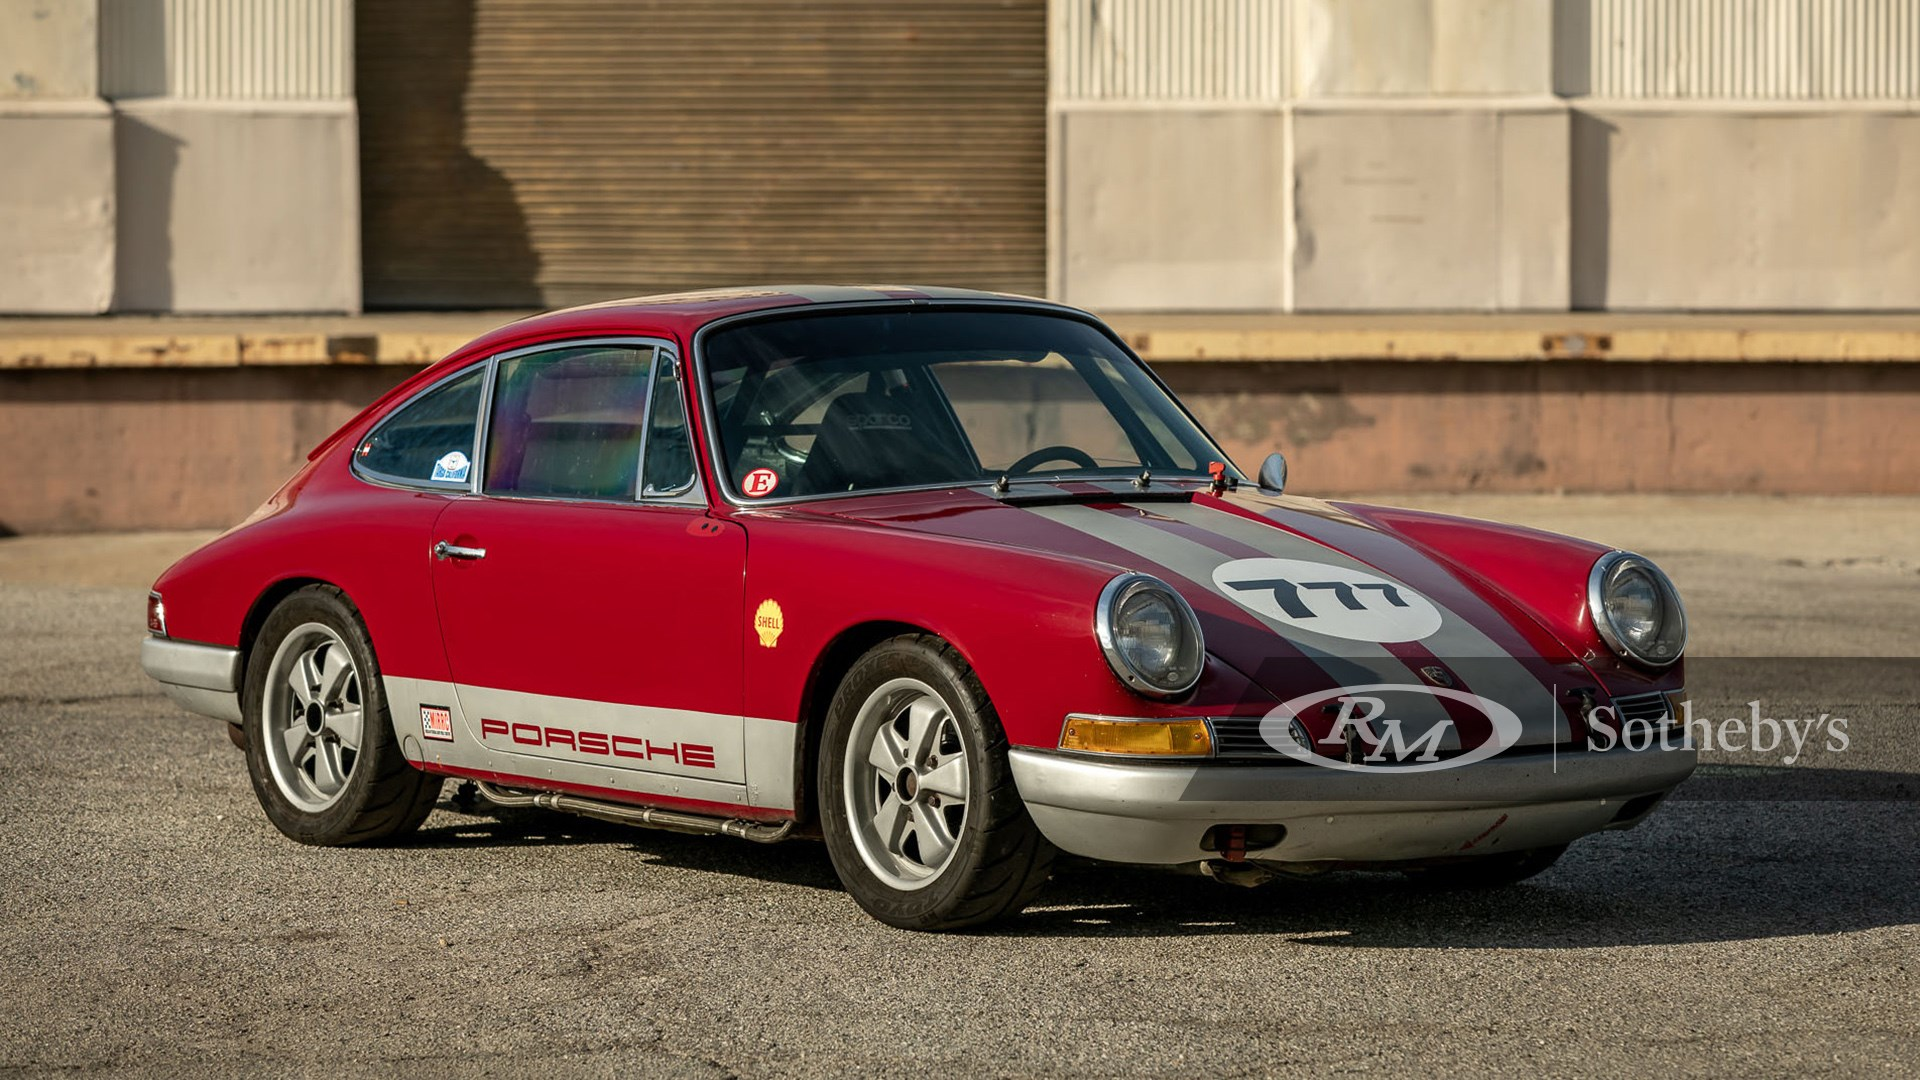 Cranberry red 1967 Porsche 911 Race Car available at RM Sotheby's Online Only Open Roads February Auction 2021